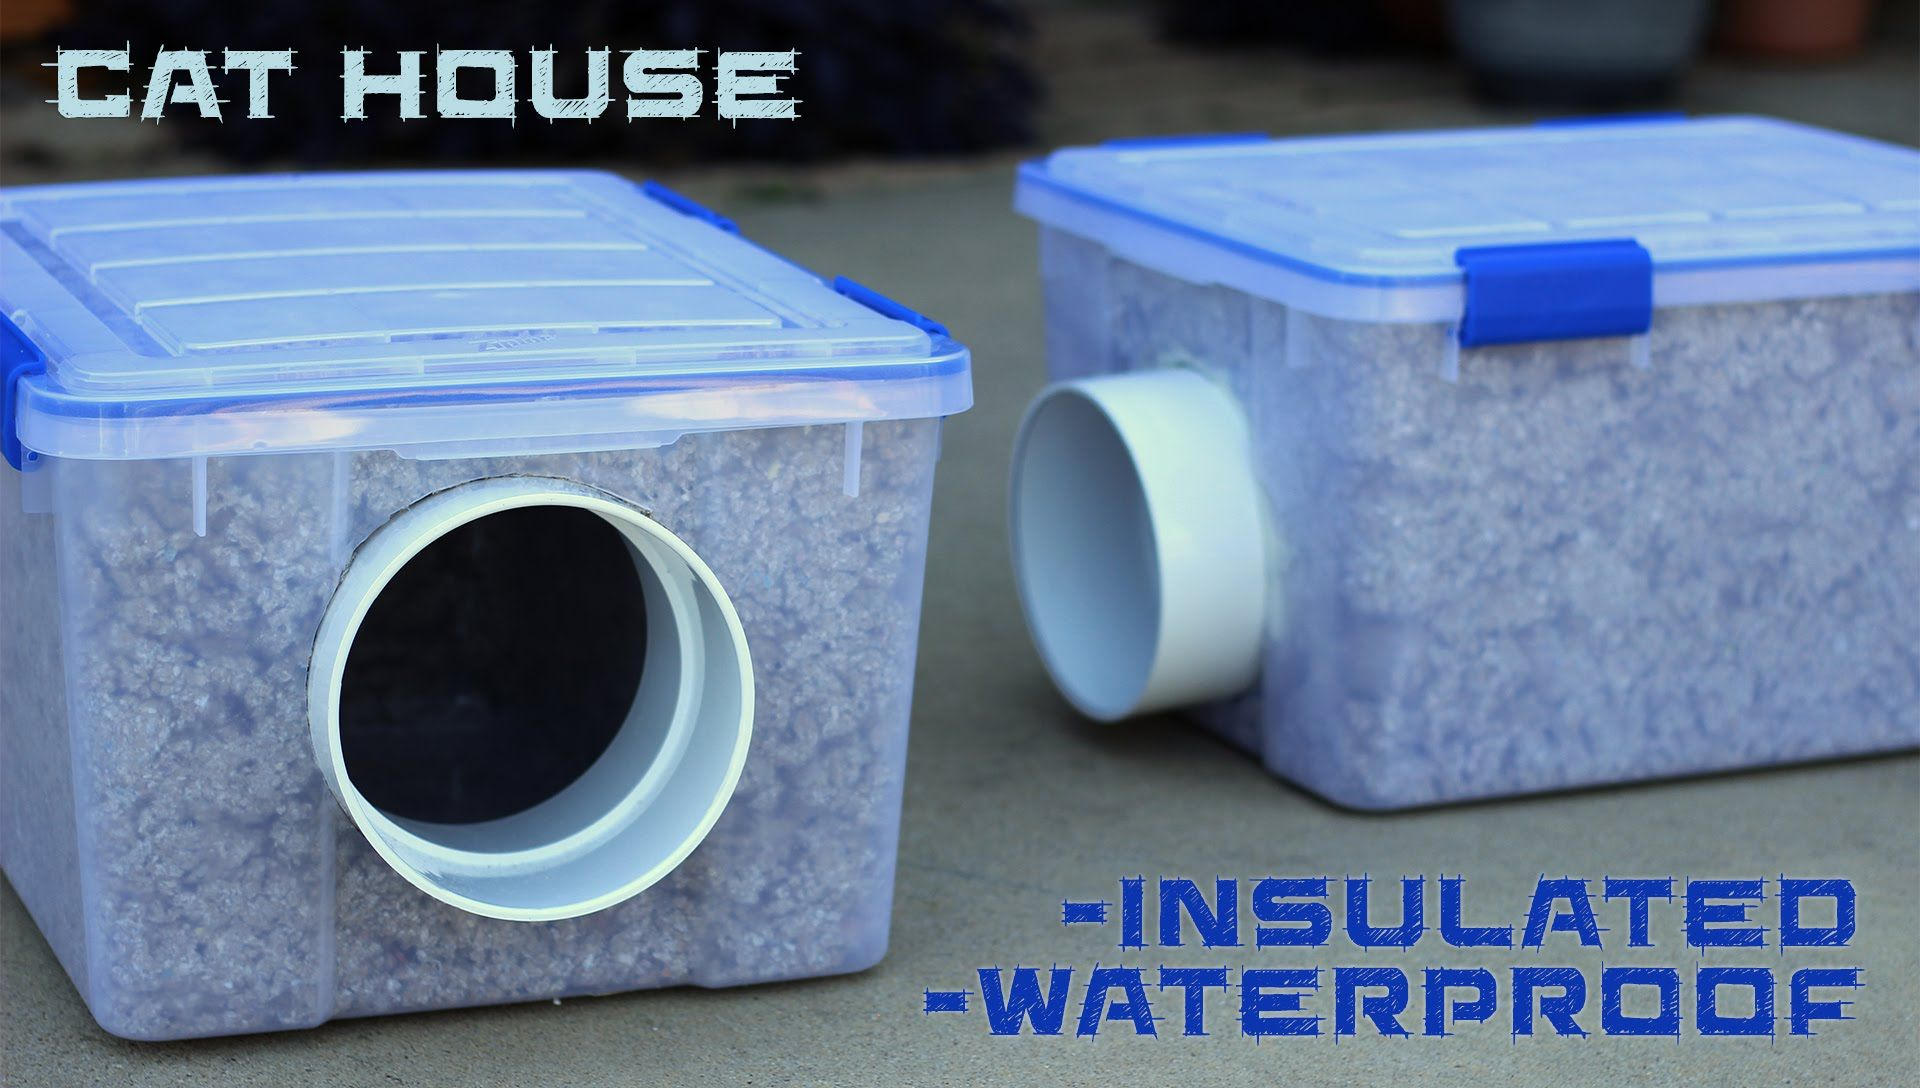 Instructions on how to build an insulated and waterproof cat ... on heated cat house plans, outdoor cat house plans, feral cat winter shelter plans, insulated rabbit house plans, insulated dog house plans,